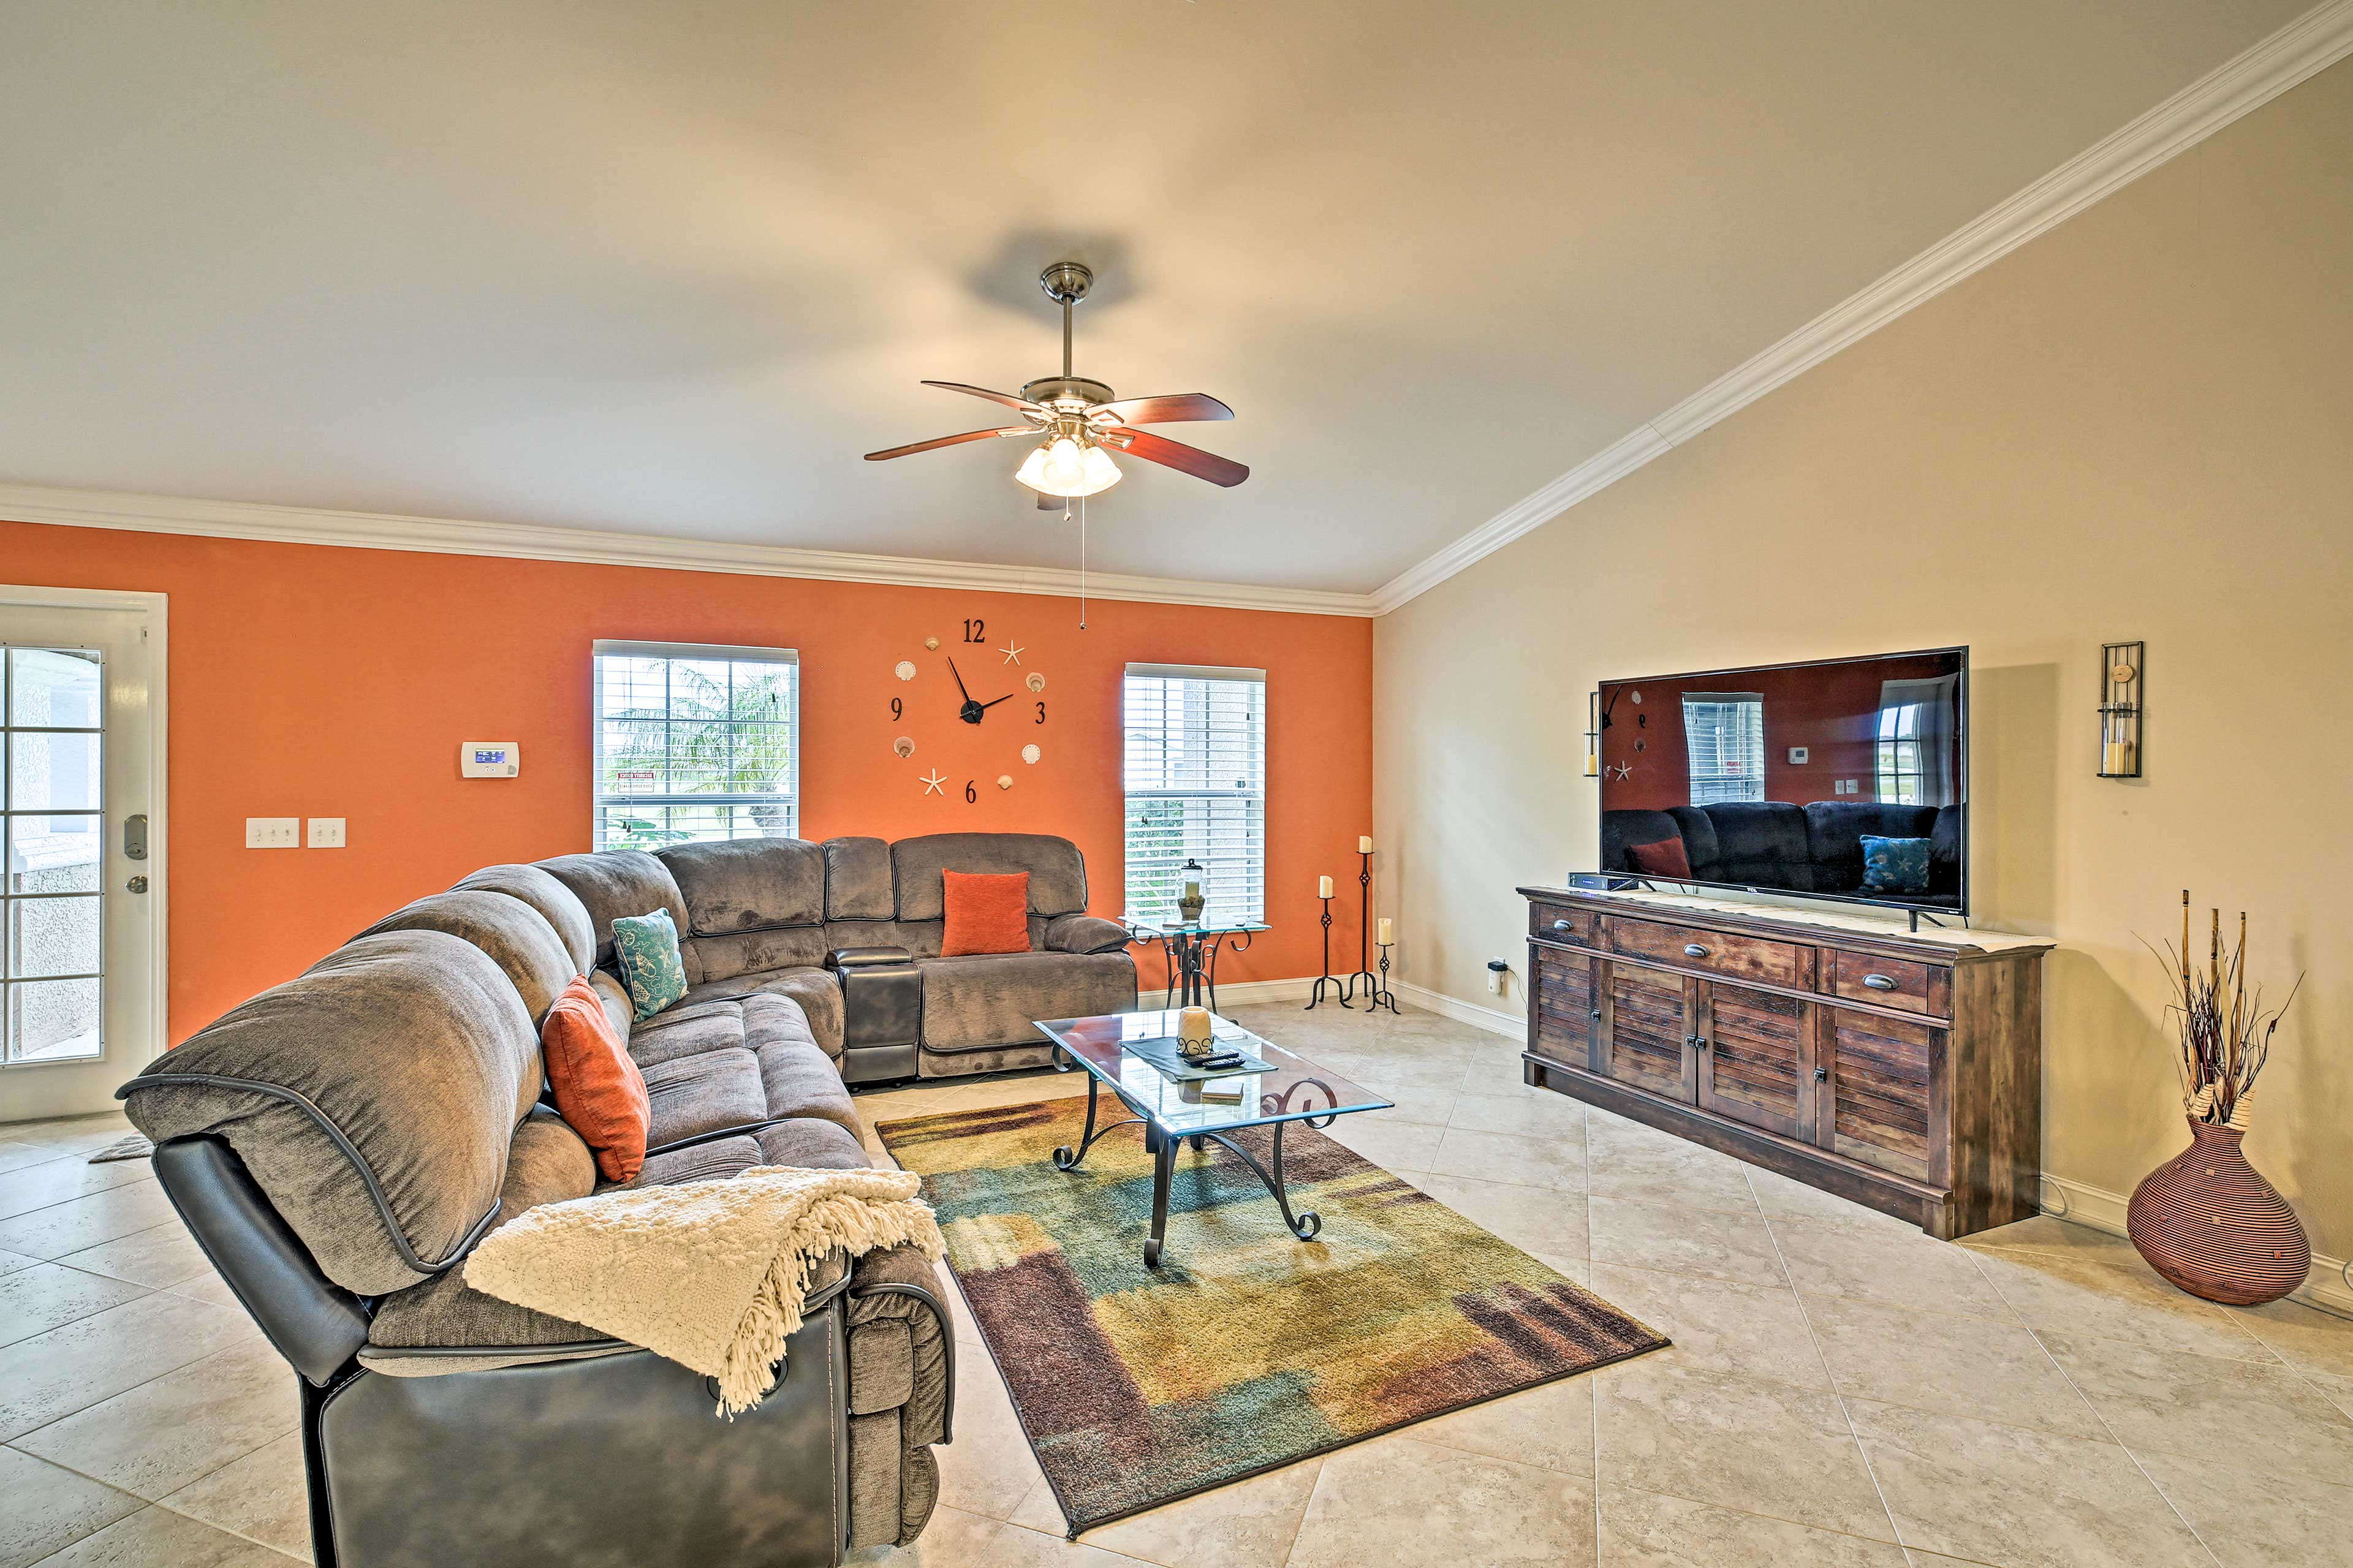 There are 3 bedrooms, 2 bathrooms, and space for 6 guests.